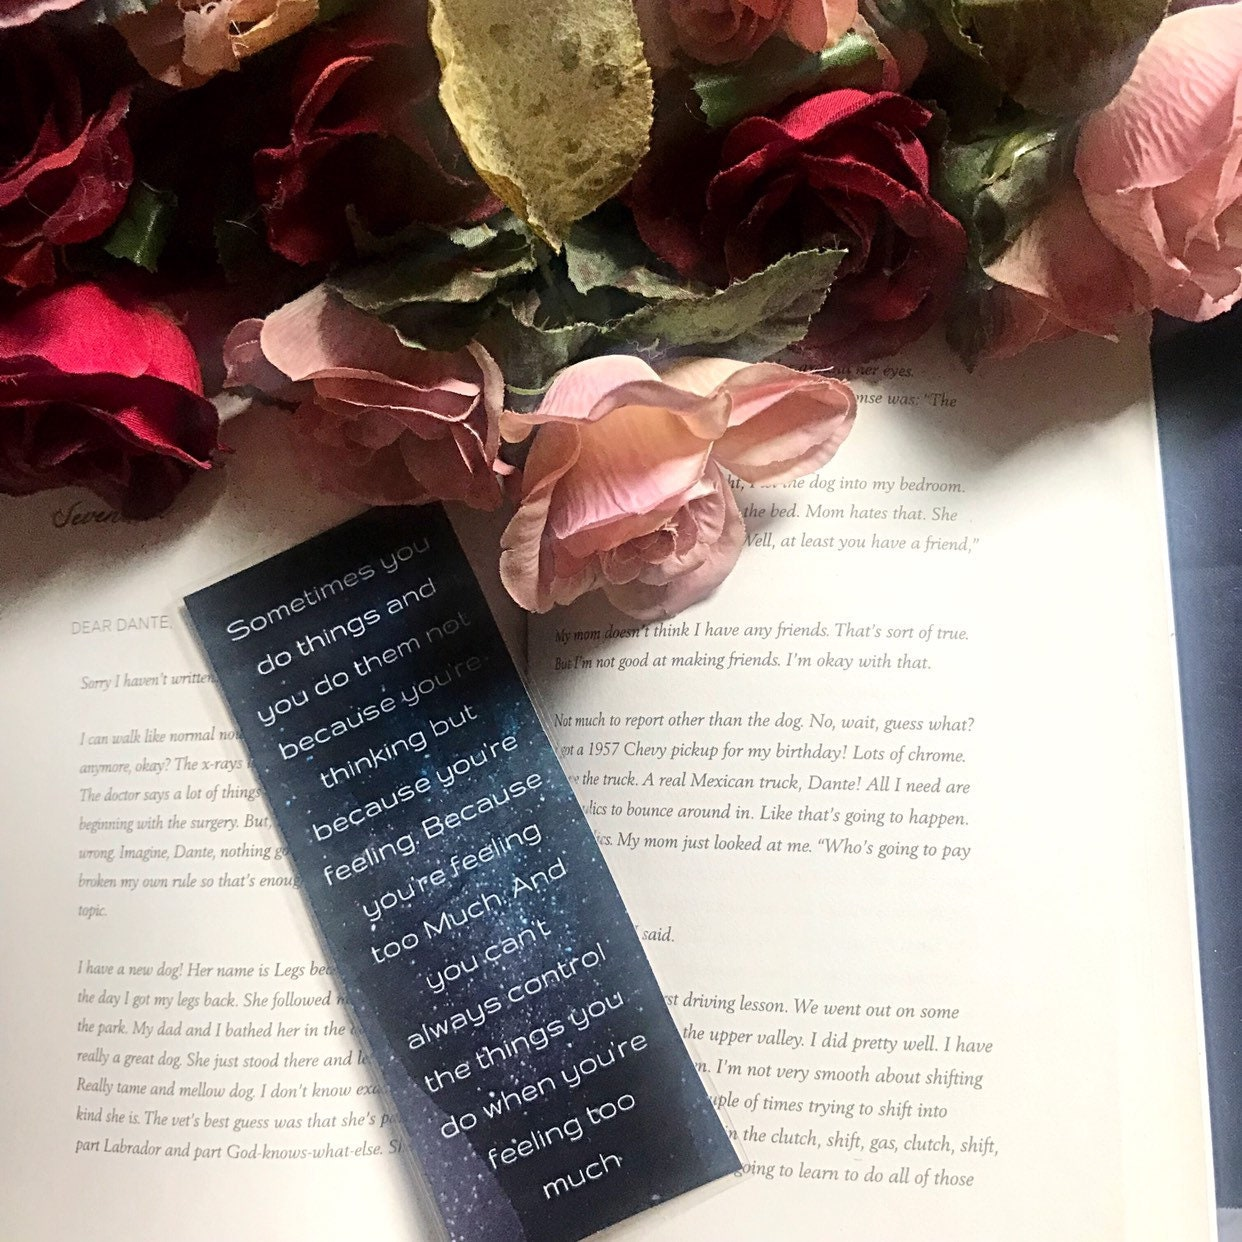 Ari and Dante - Aristotle and Dante Discover the Secrets of the Universe  Bookmarks - Feeling too much - Benjamin Alire Saenz